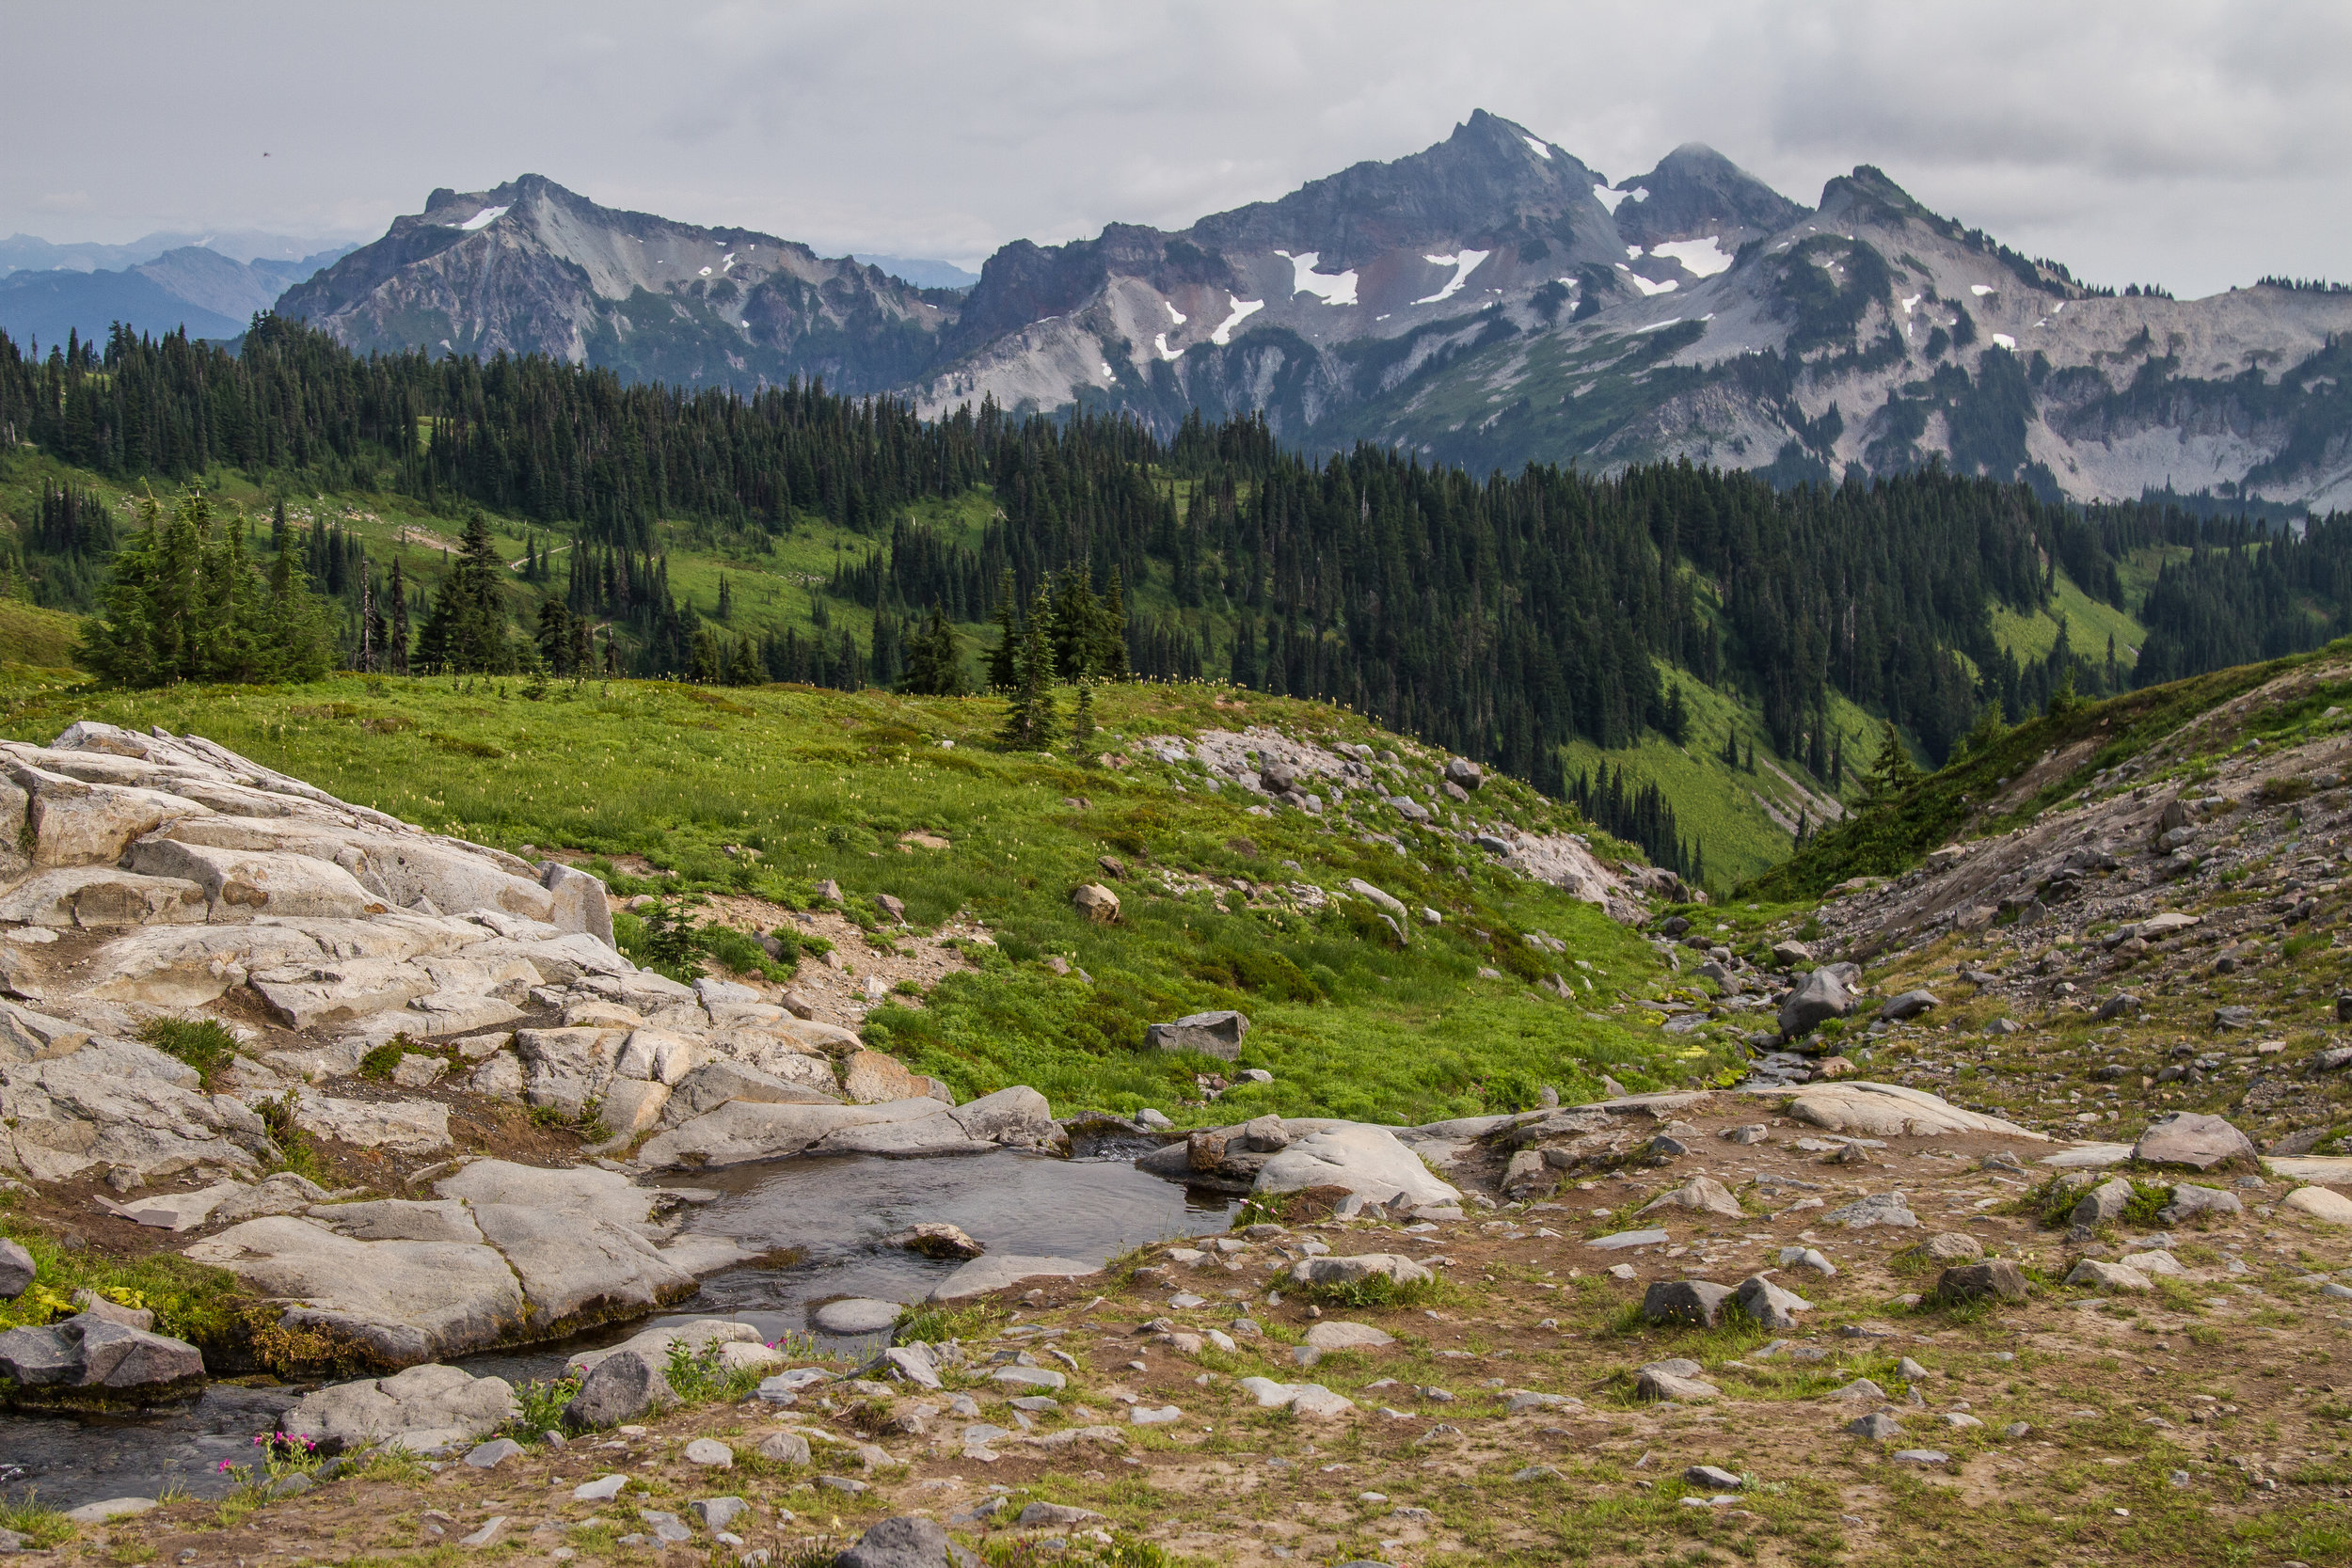 No view on this trail is underwhelming; even looking in the opposite direction from Mount Rainier provides an endless view of Cascade Mountains surrounding the National Park. © Kelly Compton